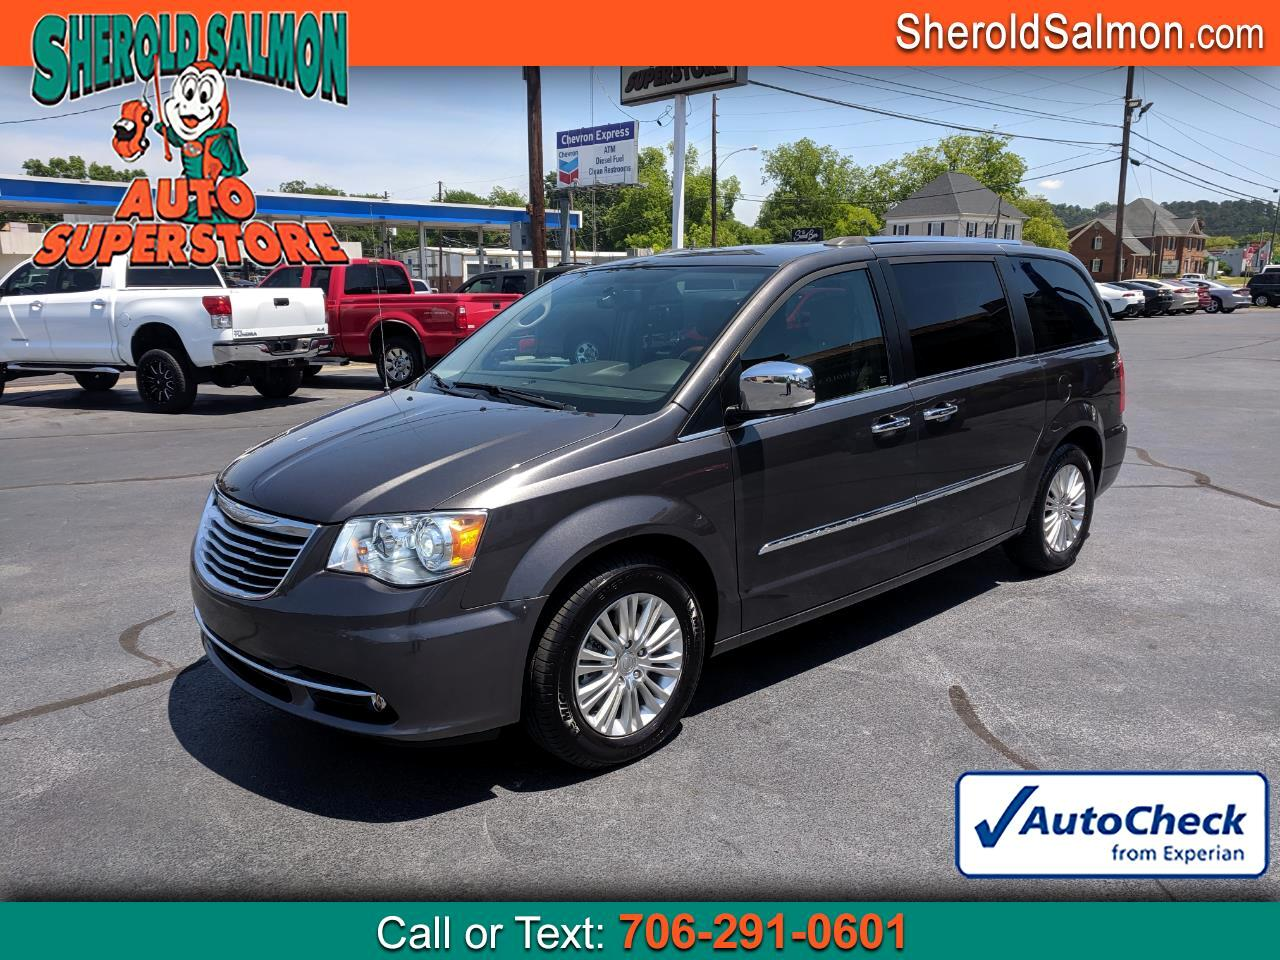 2015 Chrysler Town & Country 4dr Wgn Limited Platinum